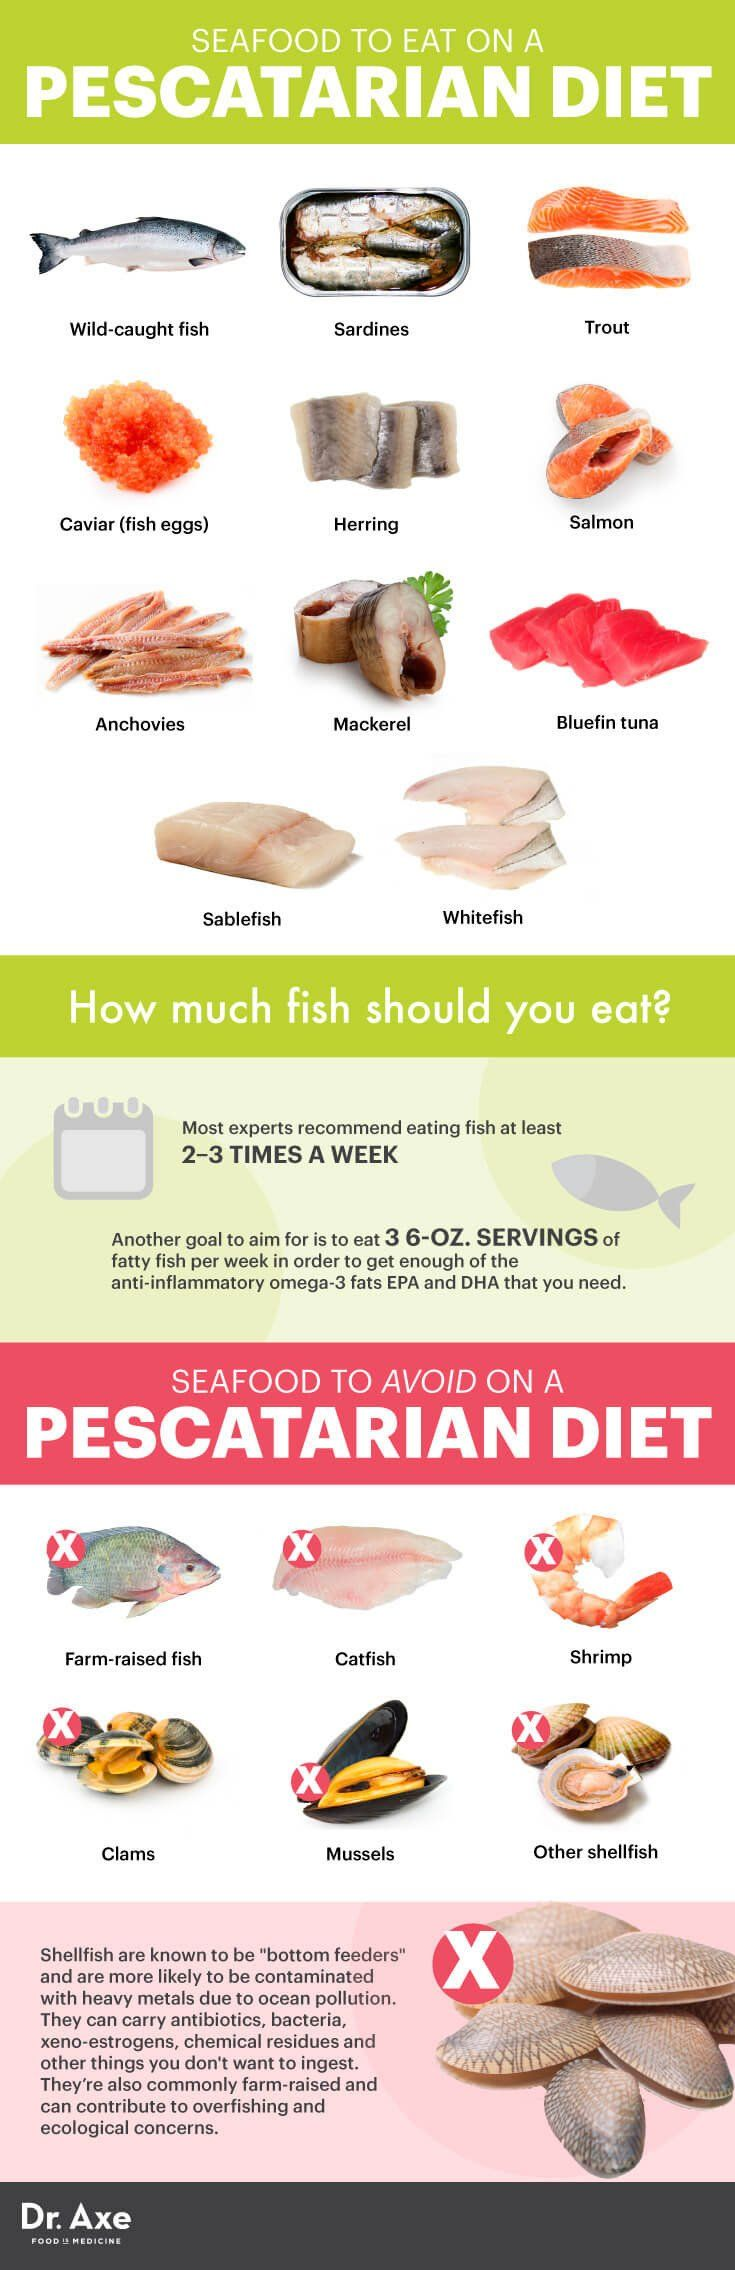 Pescatarian seafood to eat - Dr. Axe